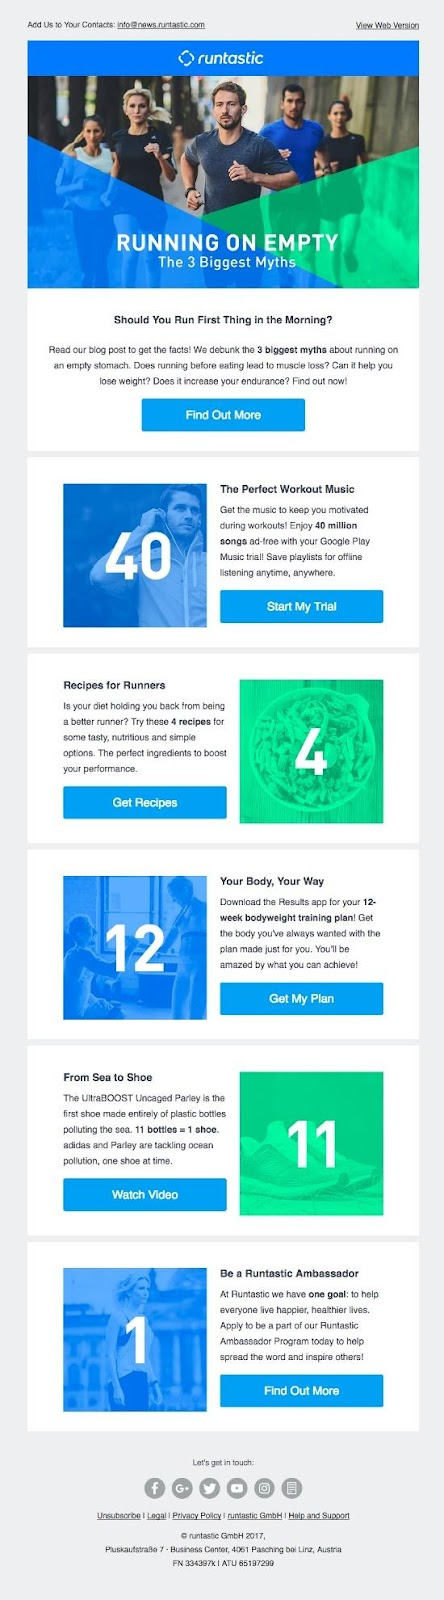 newsletter from Runtastic, a fitness app designed for athletes: